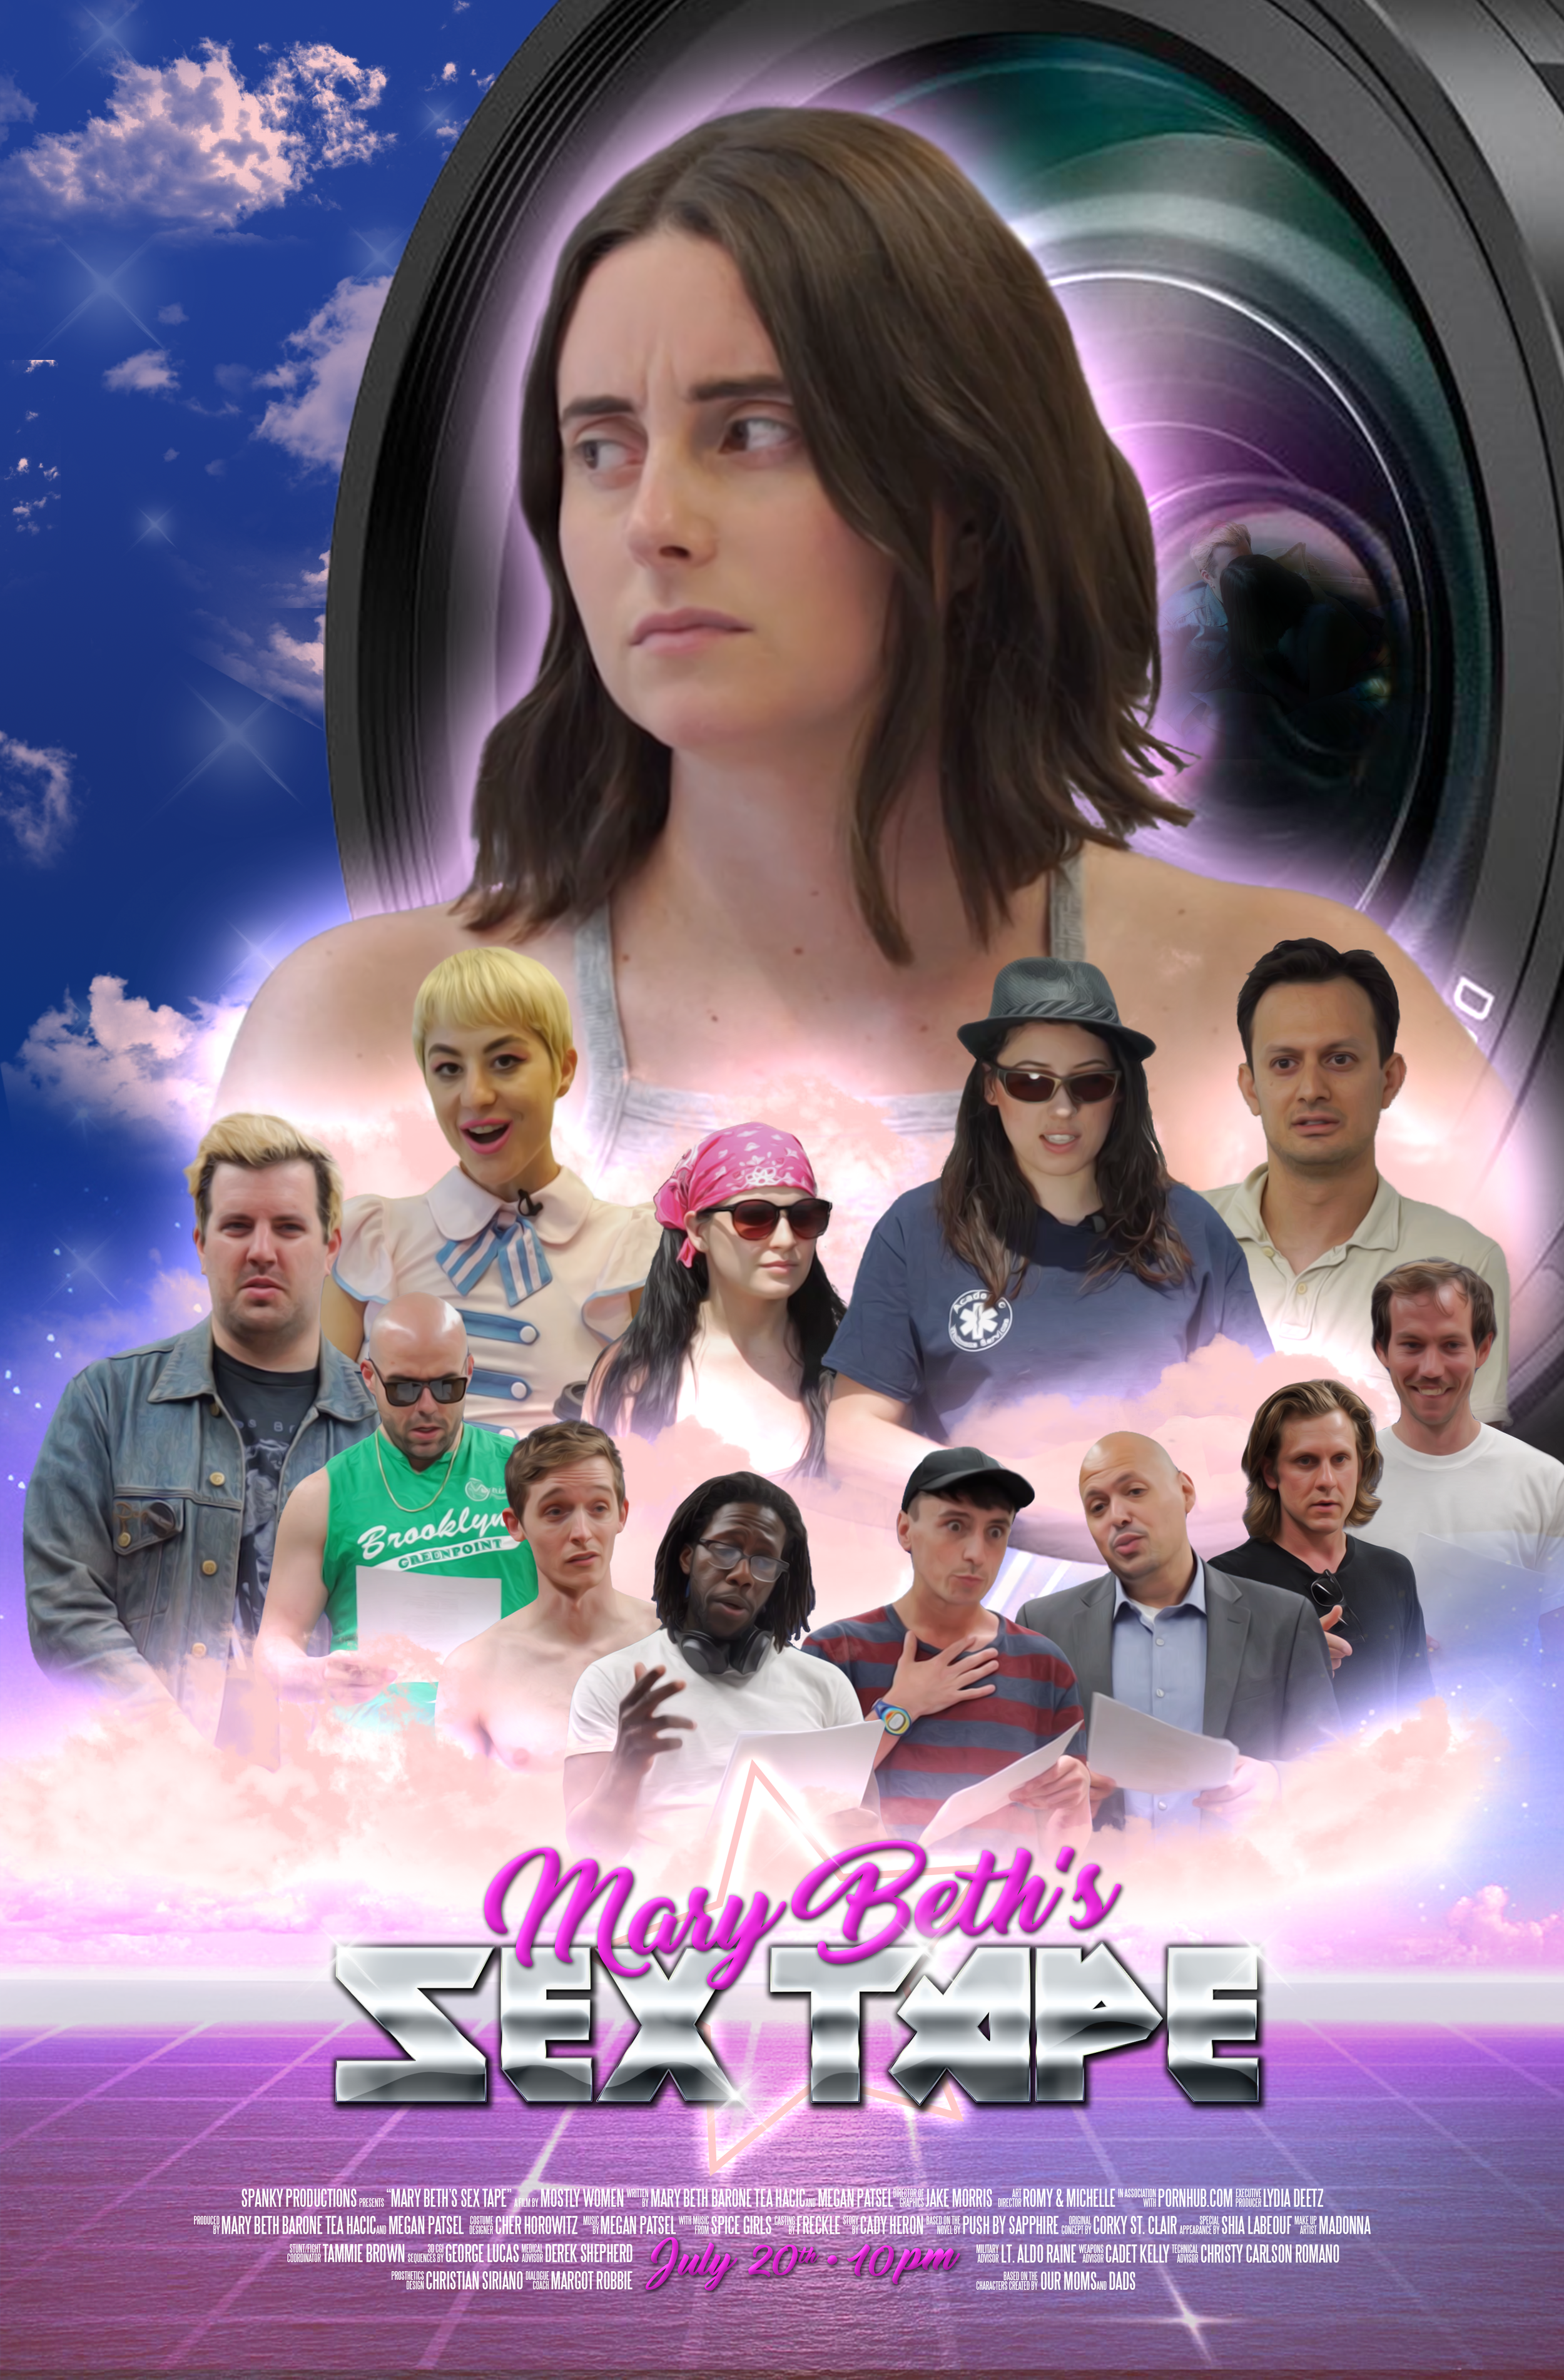 Mary-Beth-Sex-Tape-Poster-v2.png